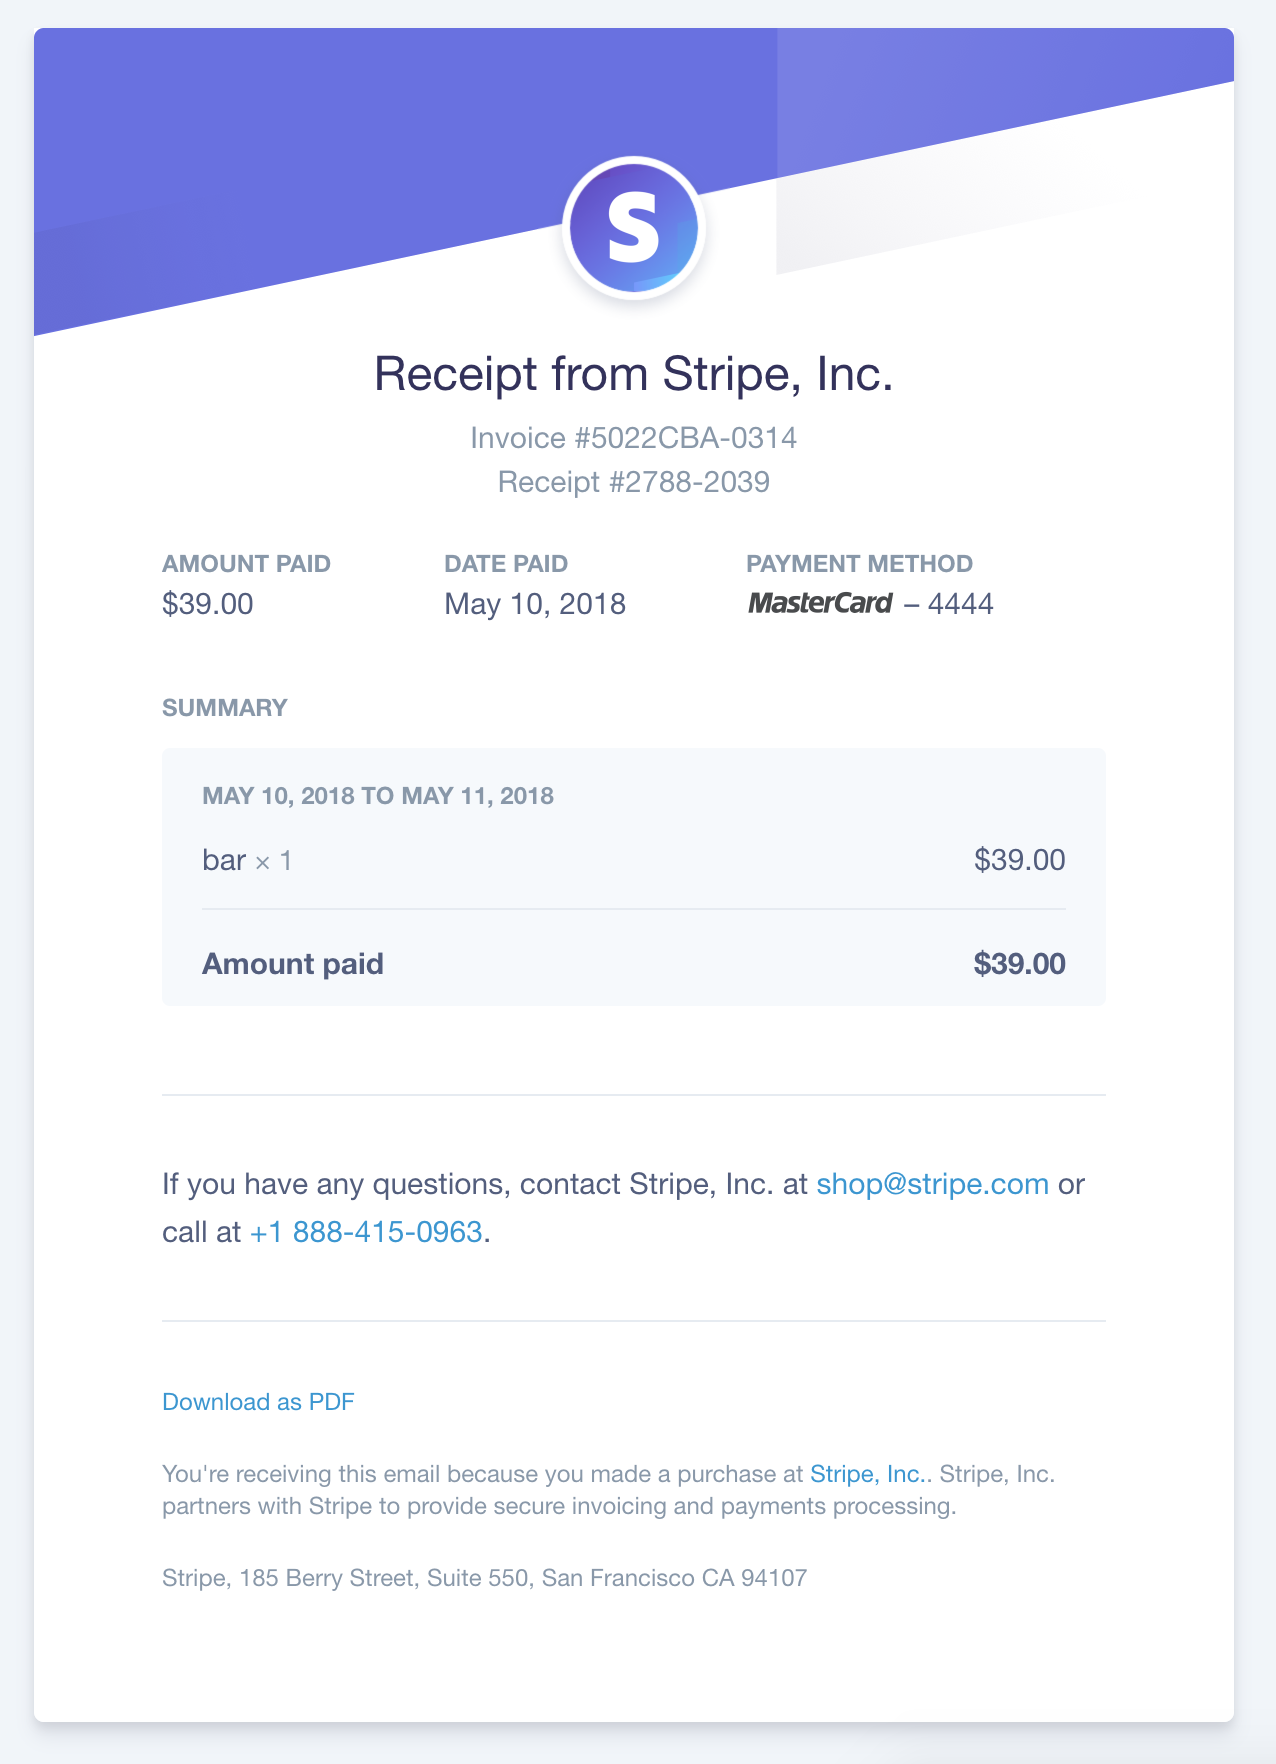 Email Receipts Stripe Email Template Design Email Template Business Mail Template Design